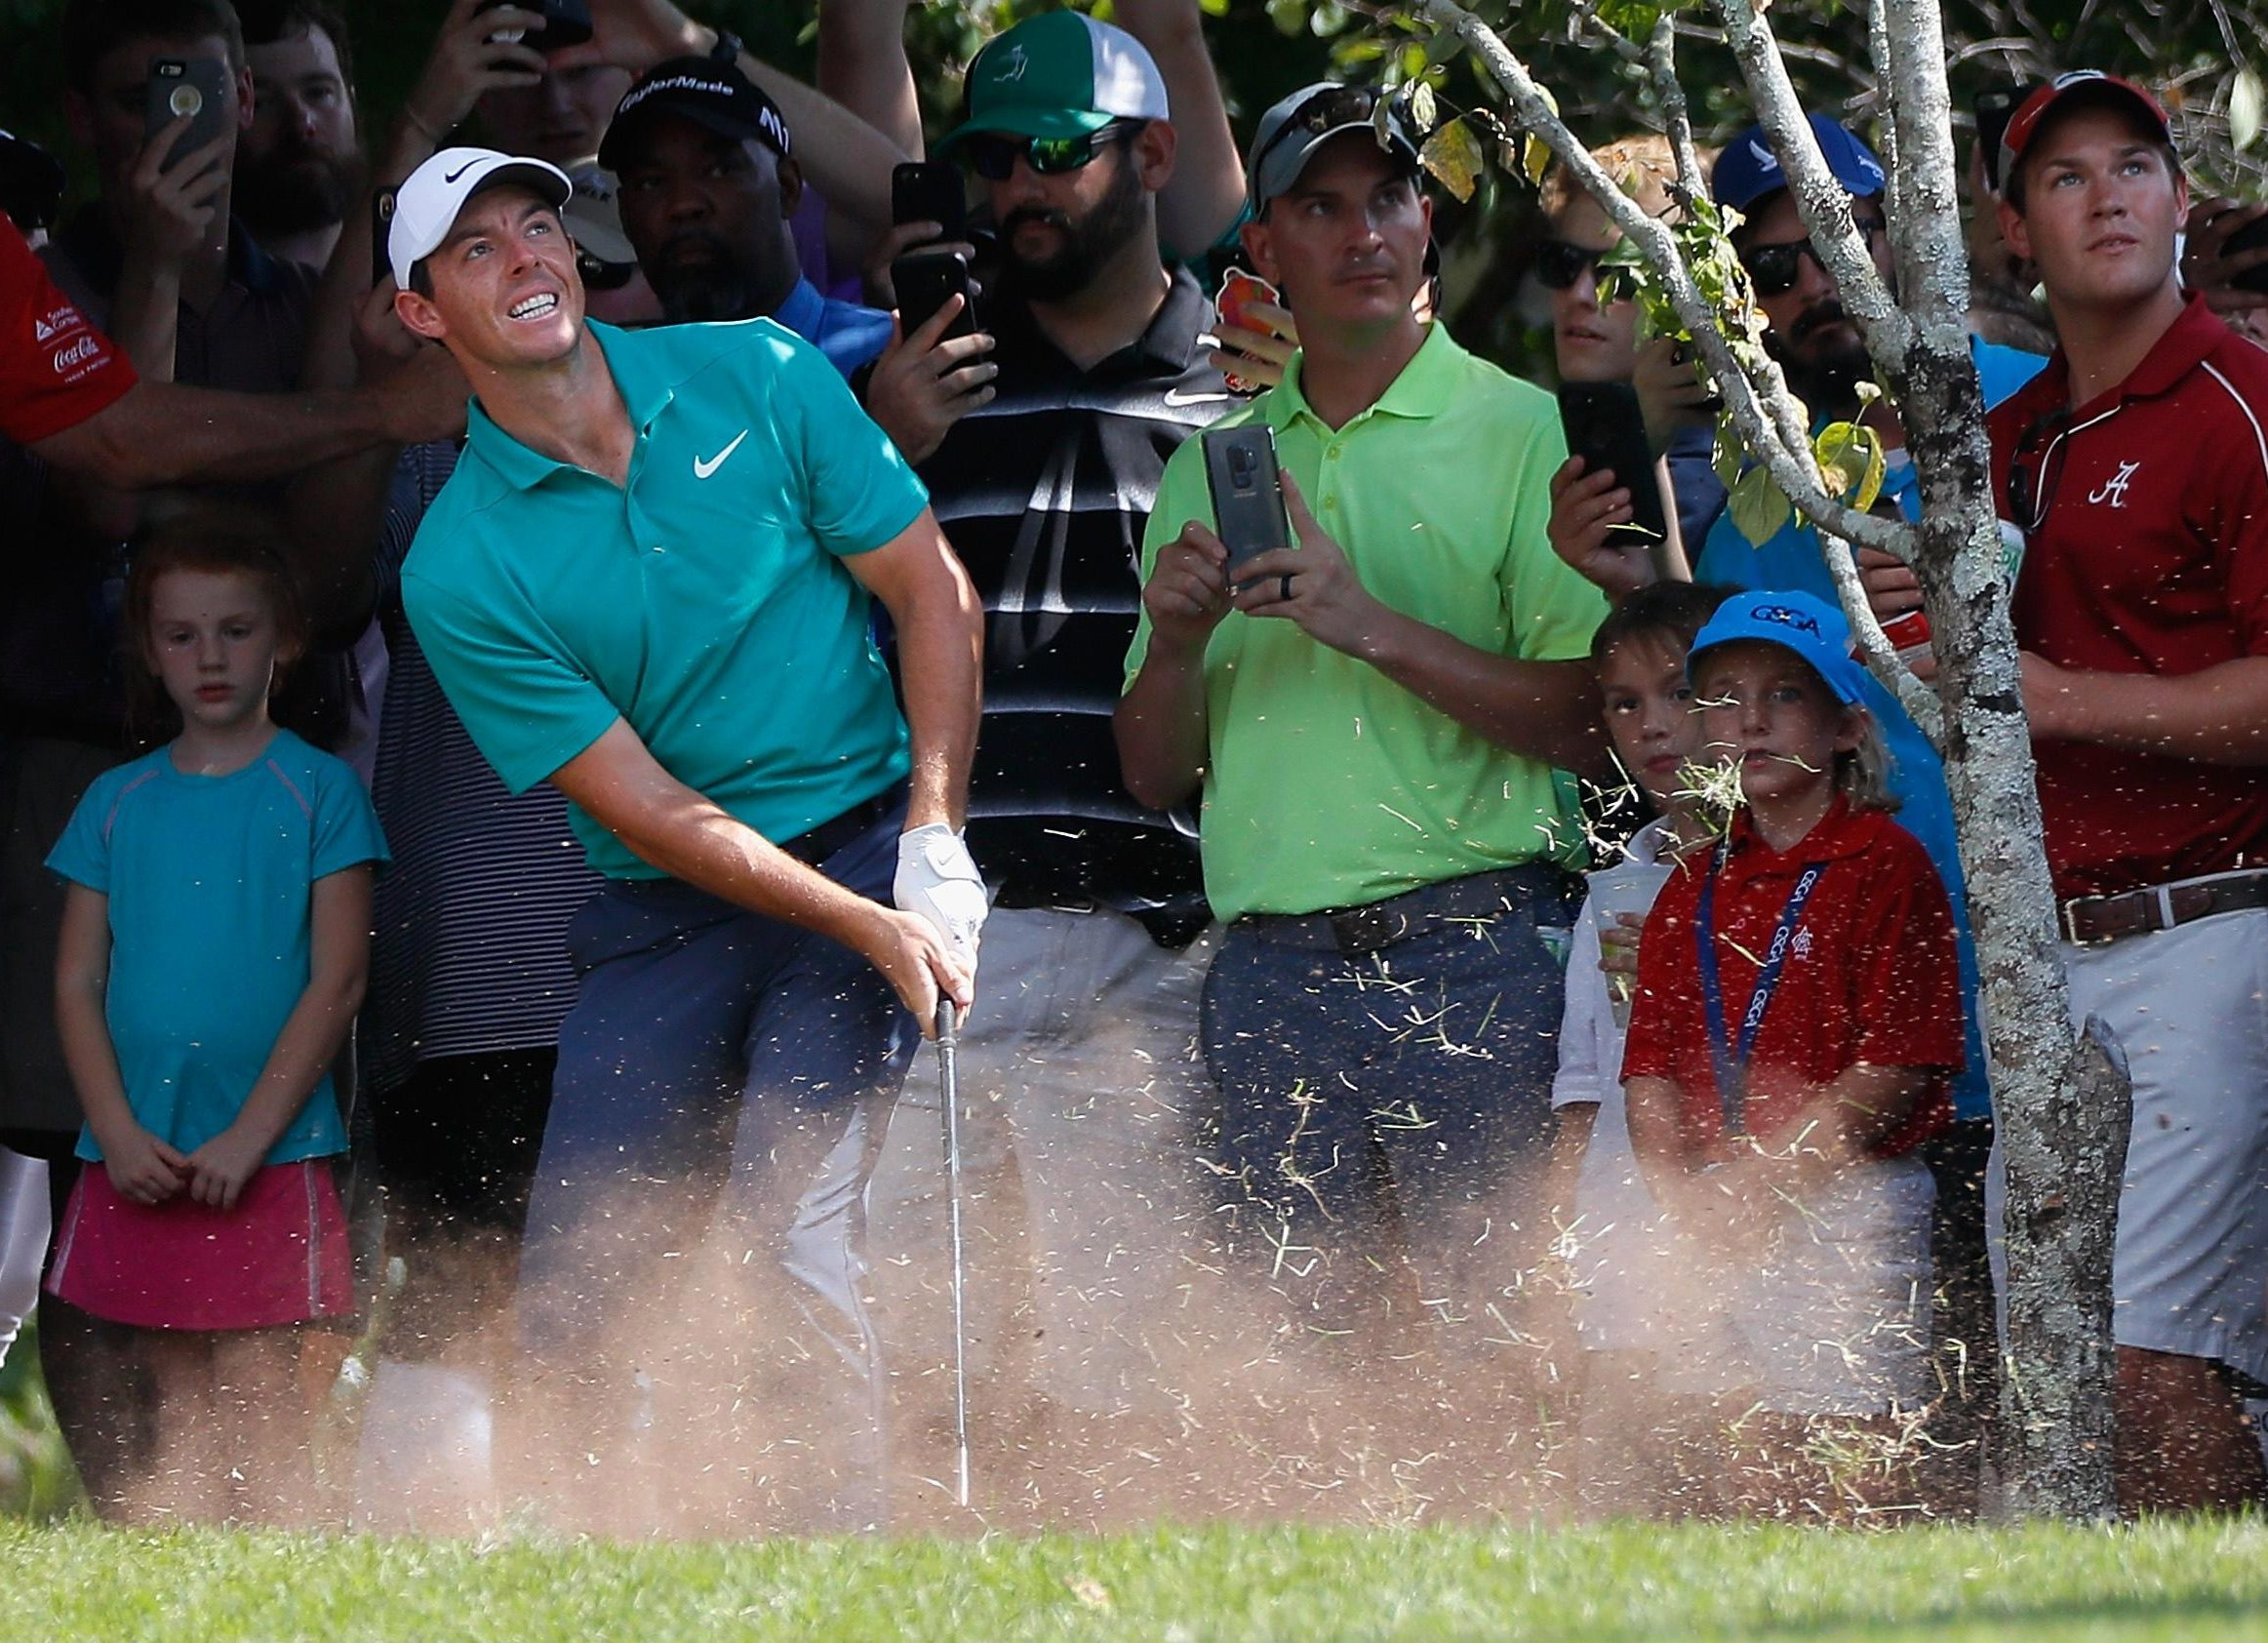 Rory McIlroy endured a difficult afternoon despite going into the final round with a tie for second